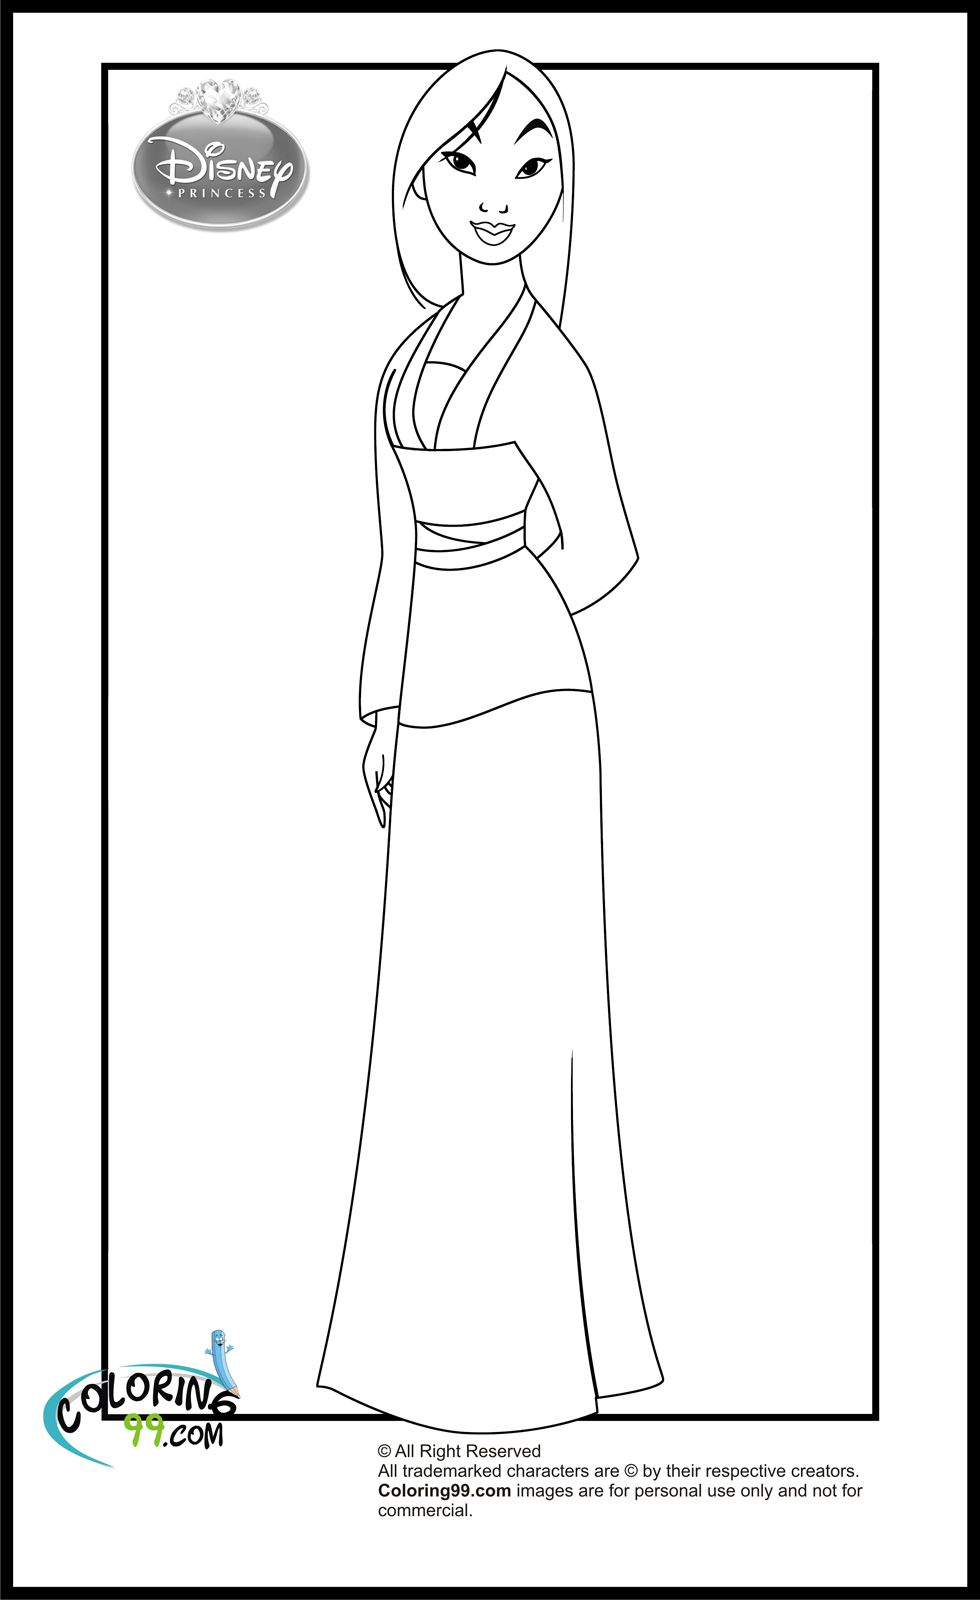 disney princess mulan coloring pages prints pinterest easter